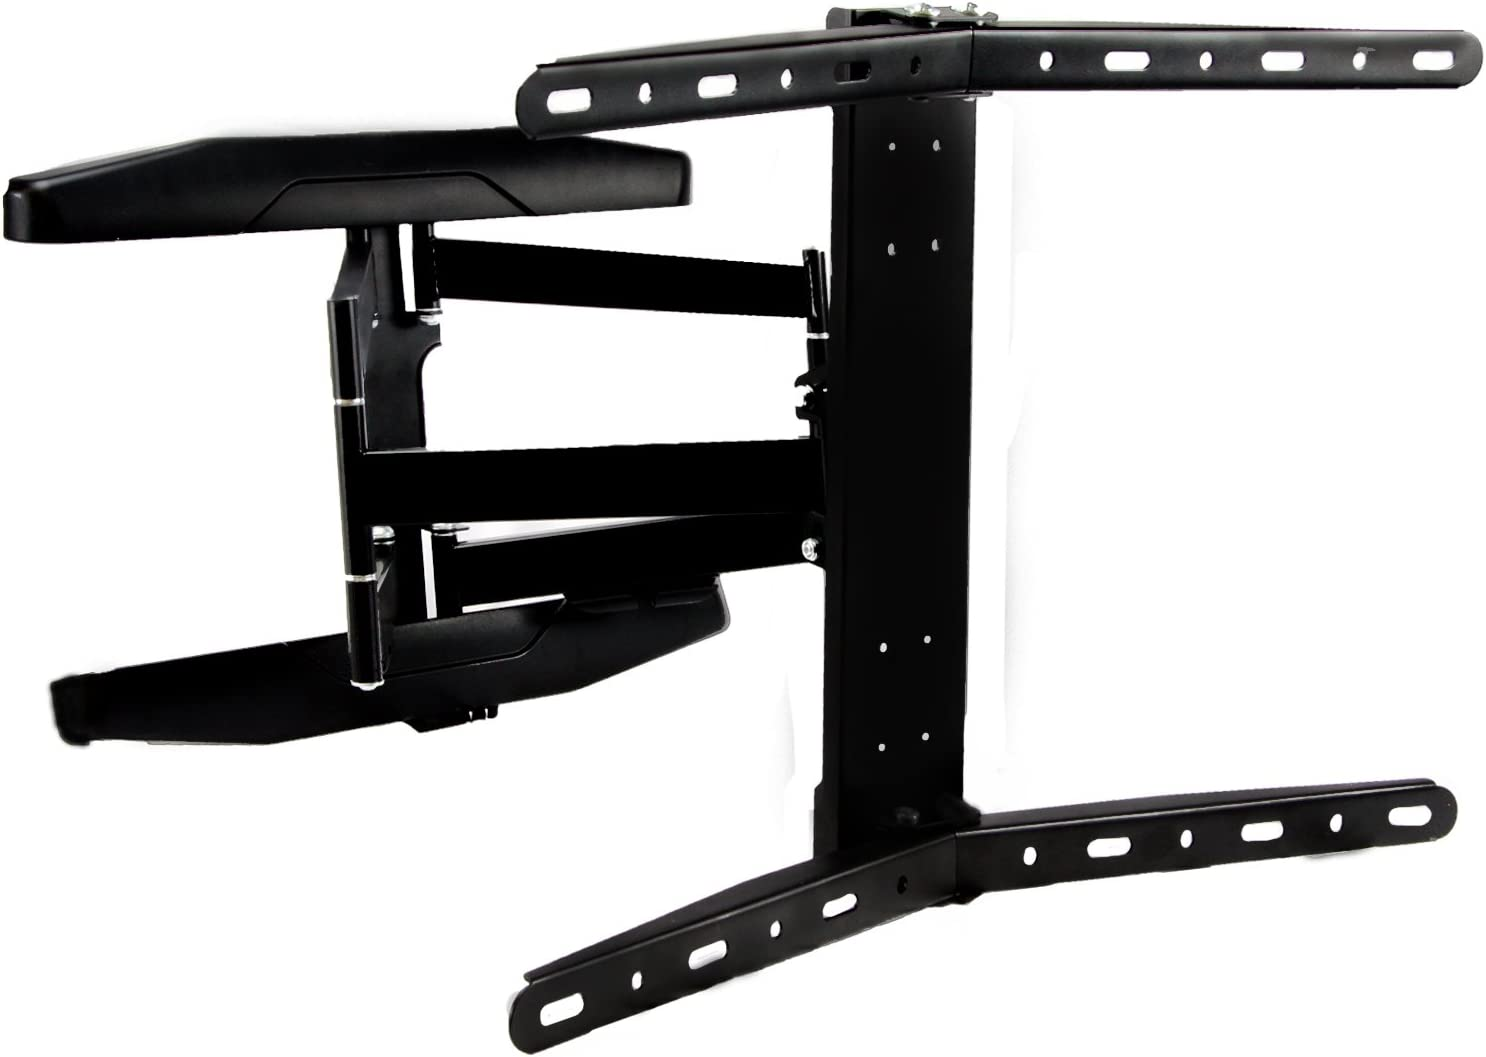 Amazon Com Full Motion Wall Mount For 32 70 Curved Screens Furniture Decor